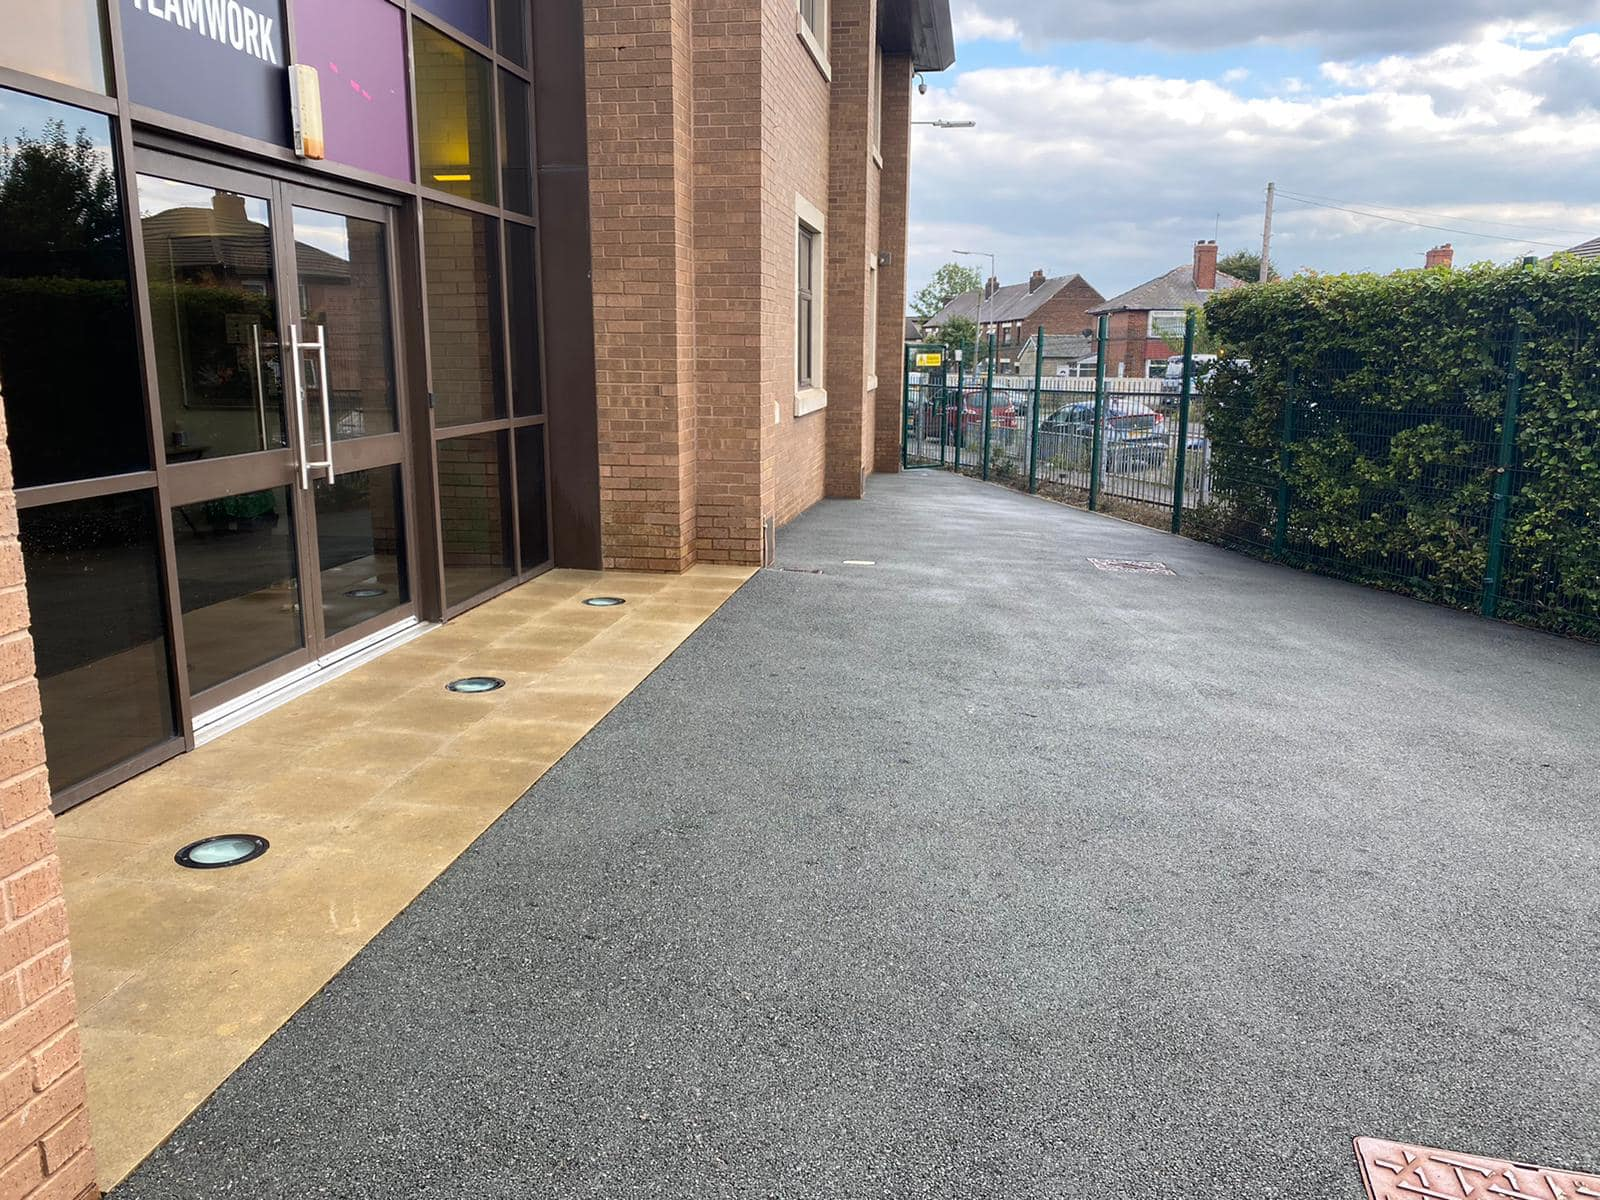 Chewing Gum Removal in Bradford, West Yorkshire